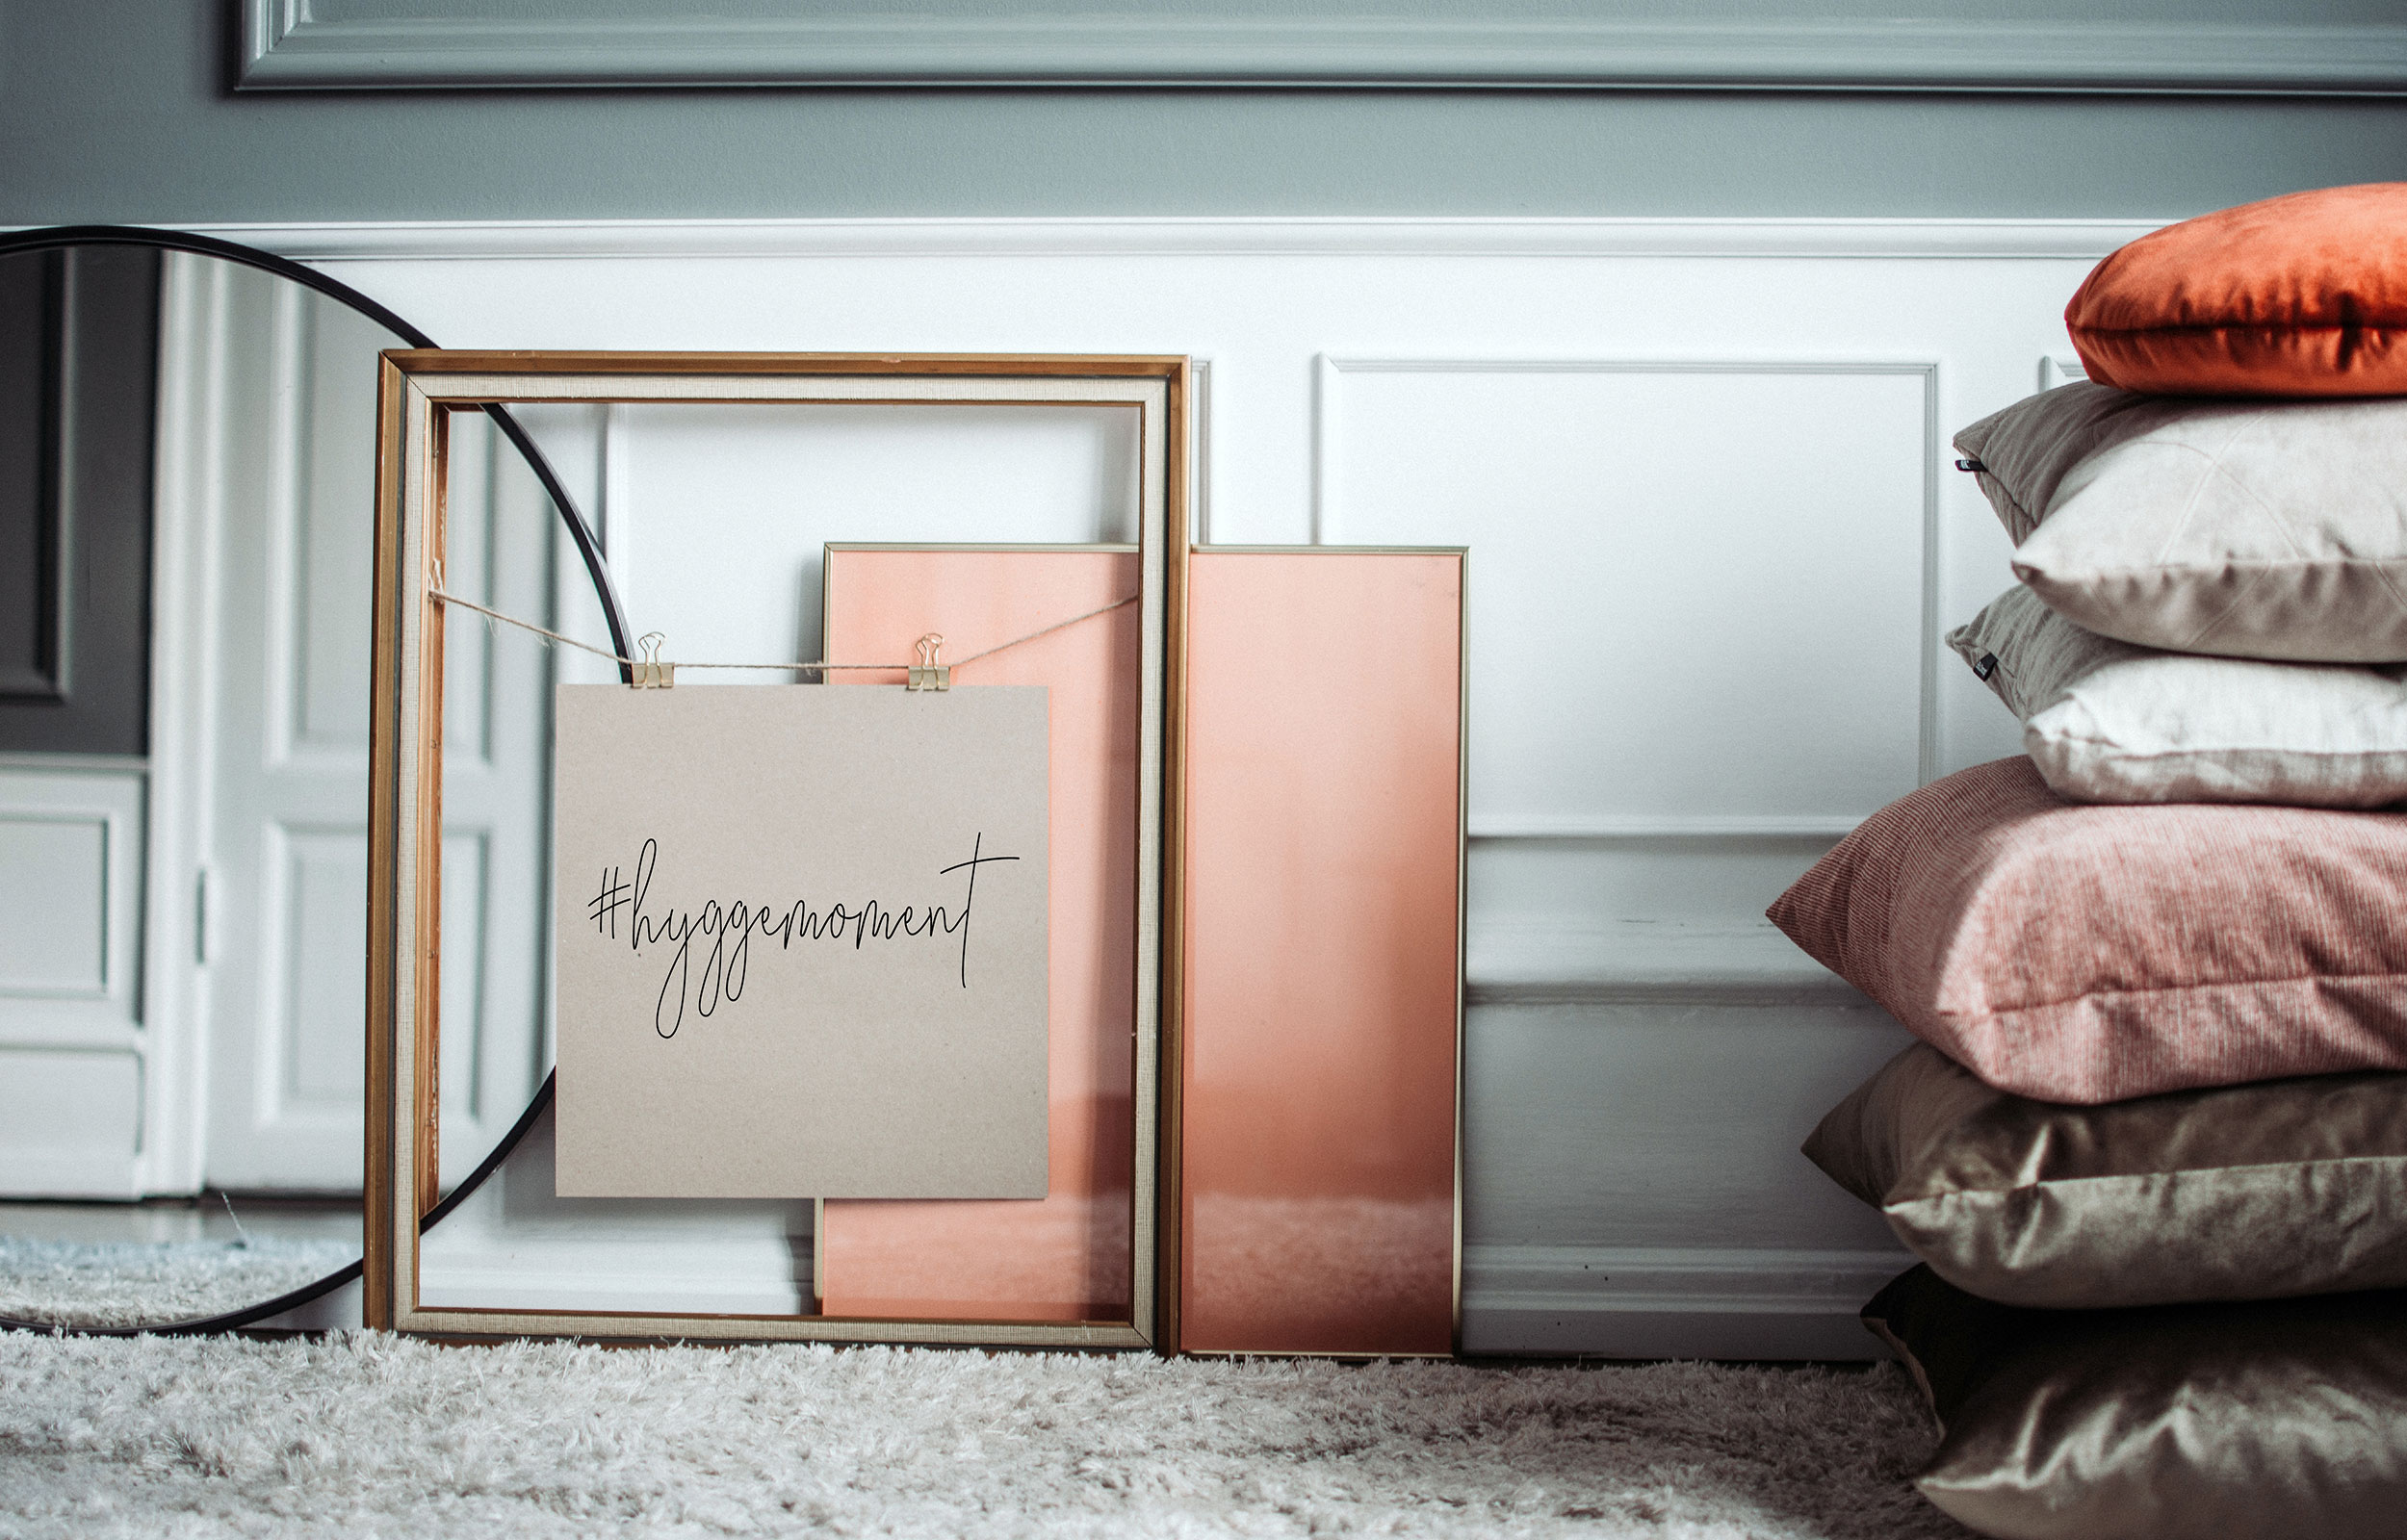 Ring mirror and frames